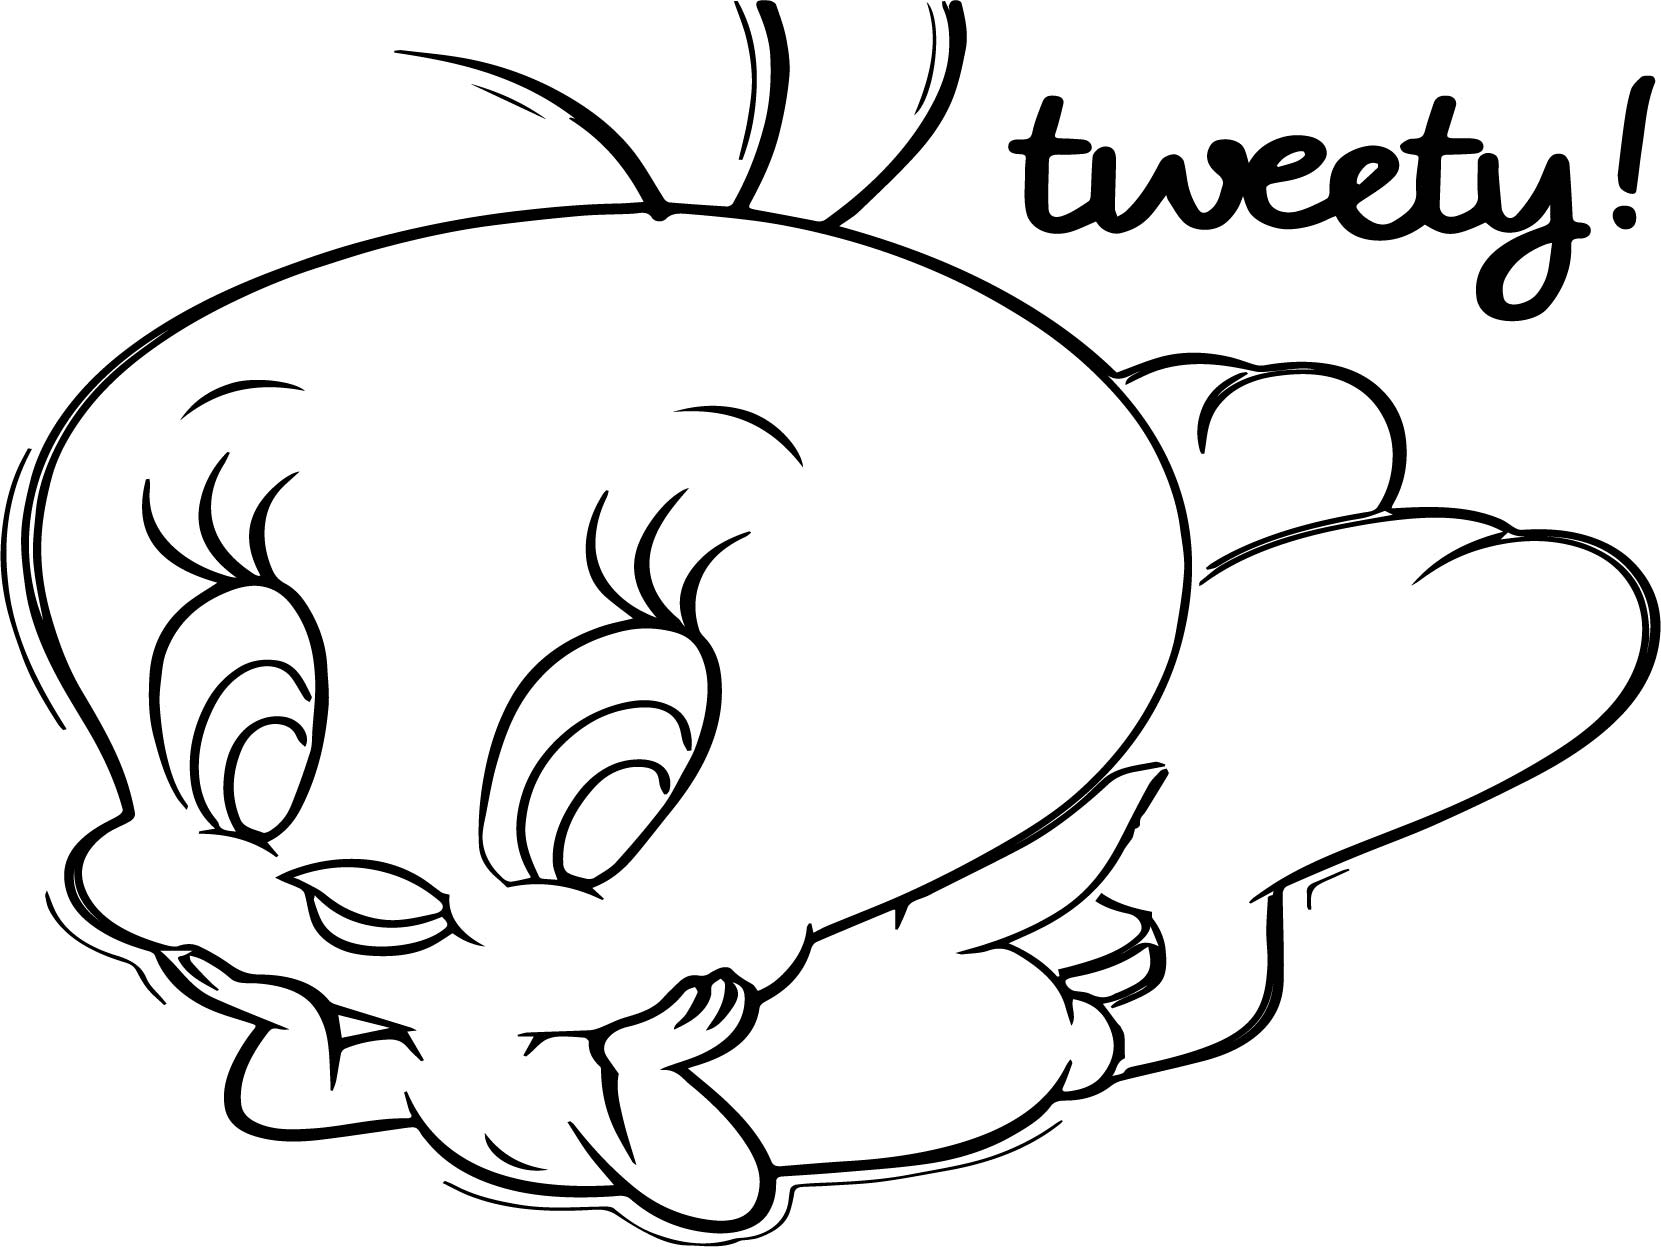 tweety bird coloring page - tweety bird coloring page